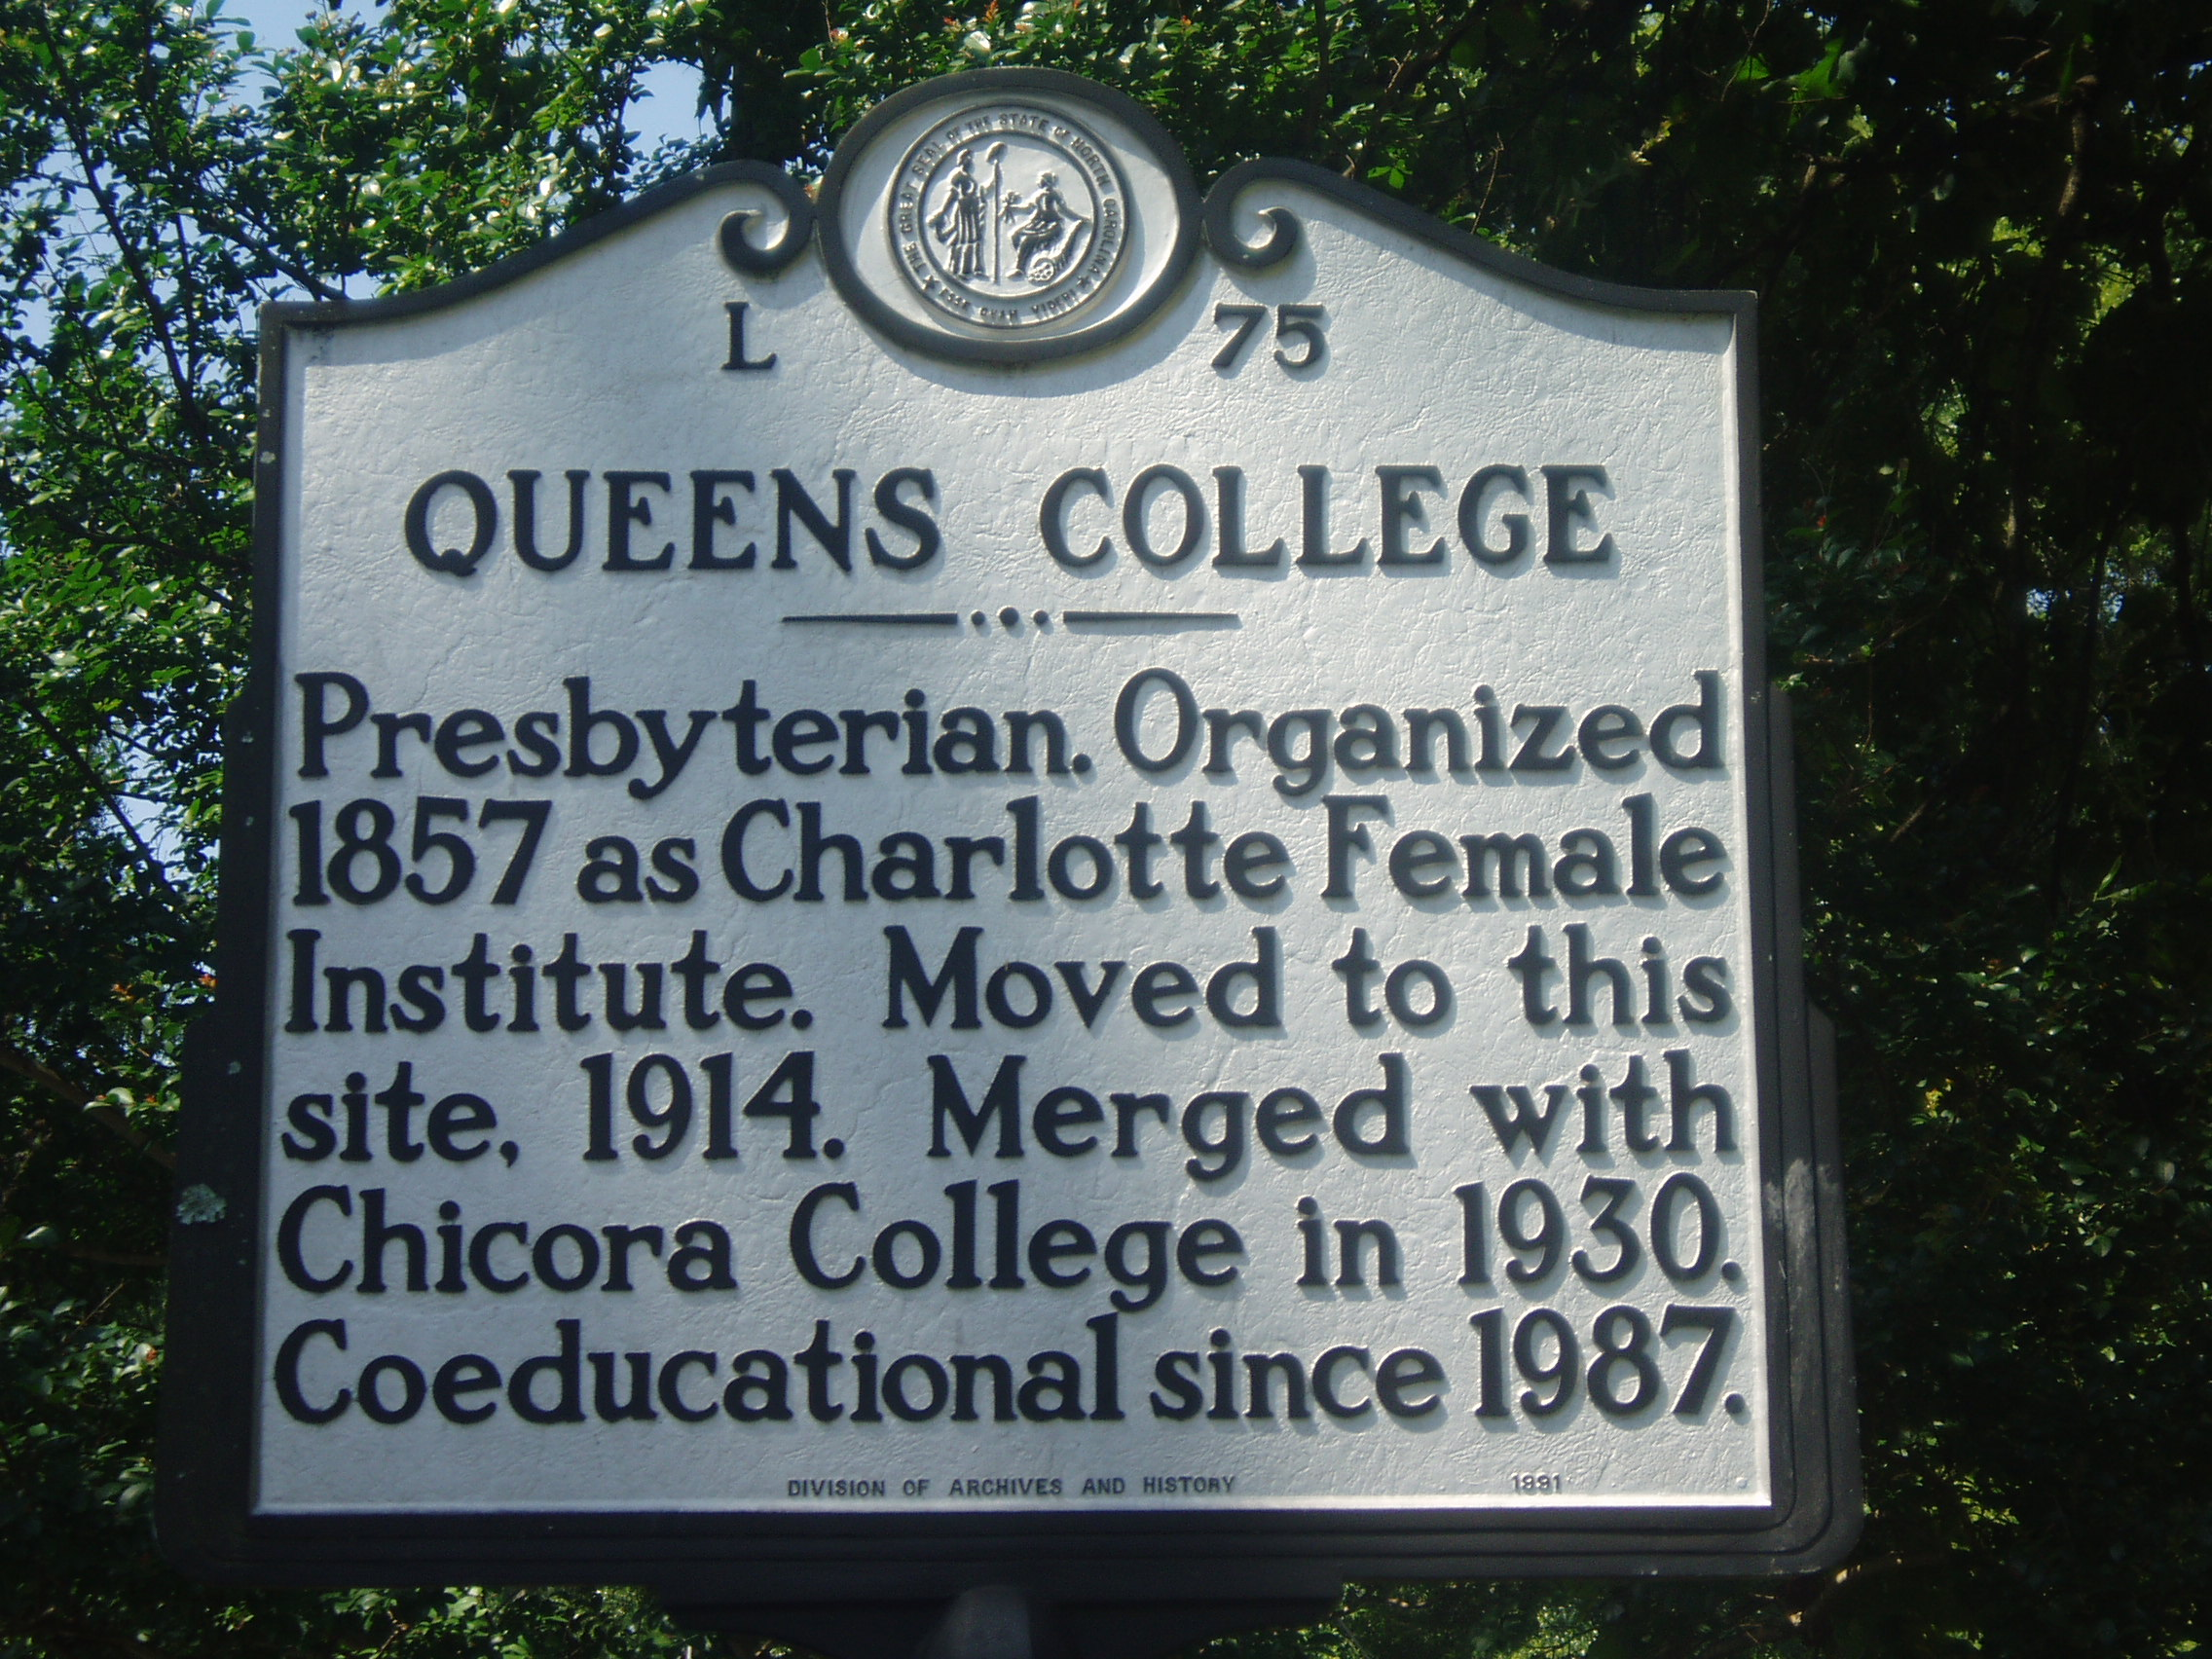 An NC Highway Historical Marker designating the site of Queen's College.